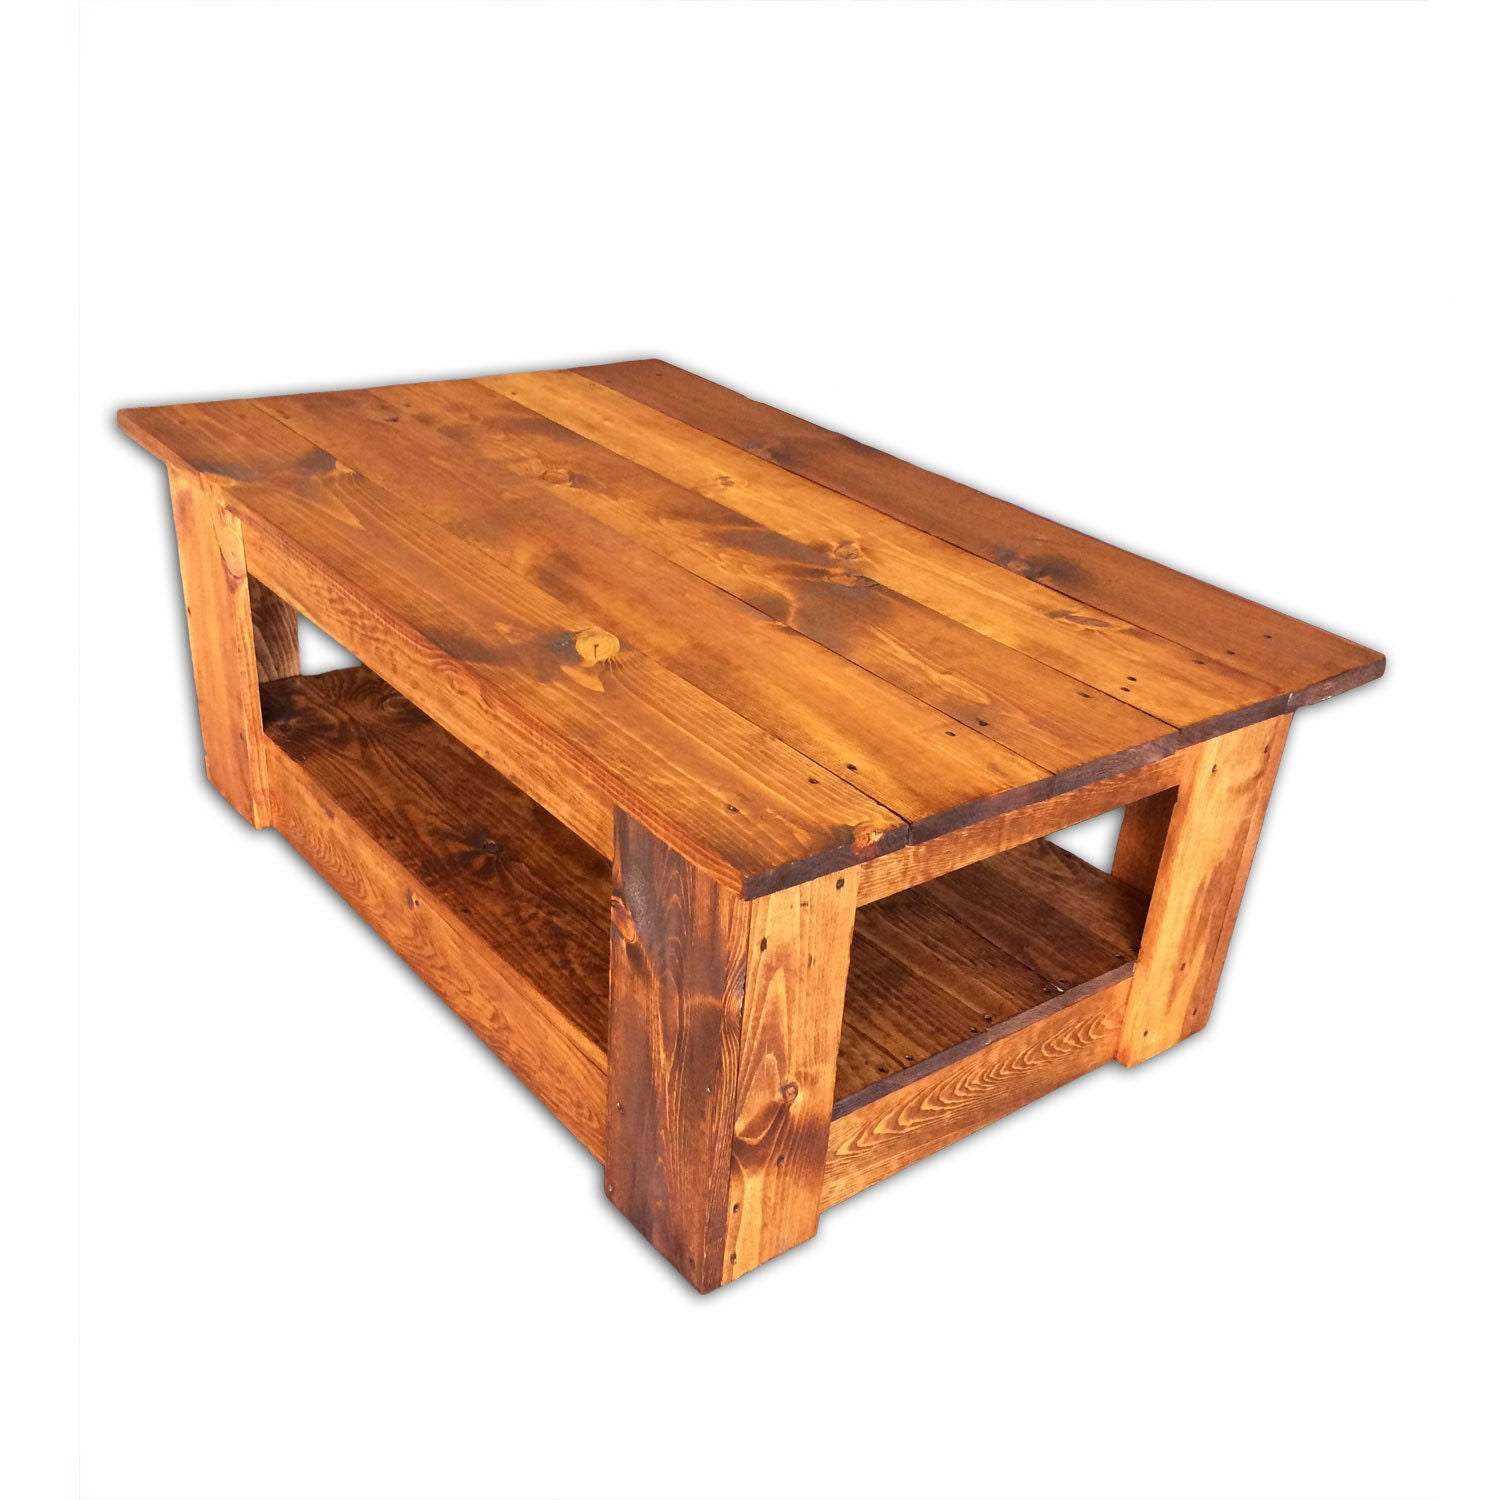 Handmade Pine Coffee Table